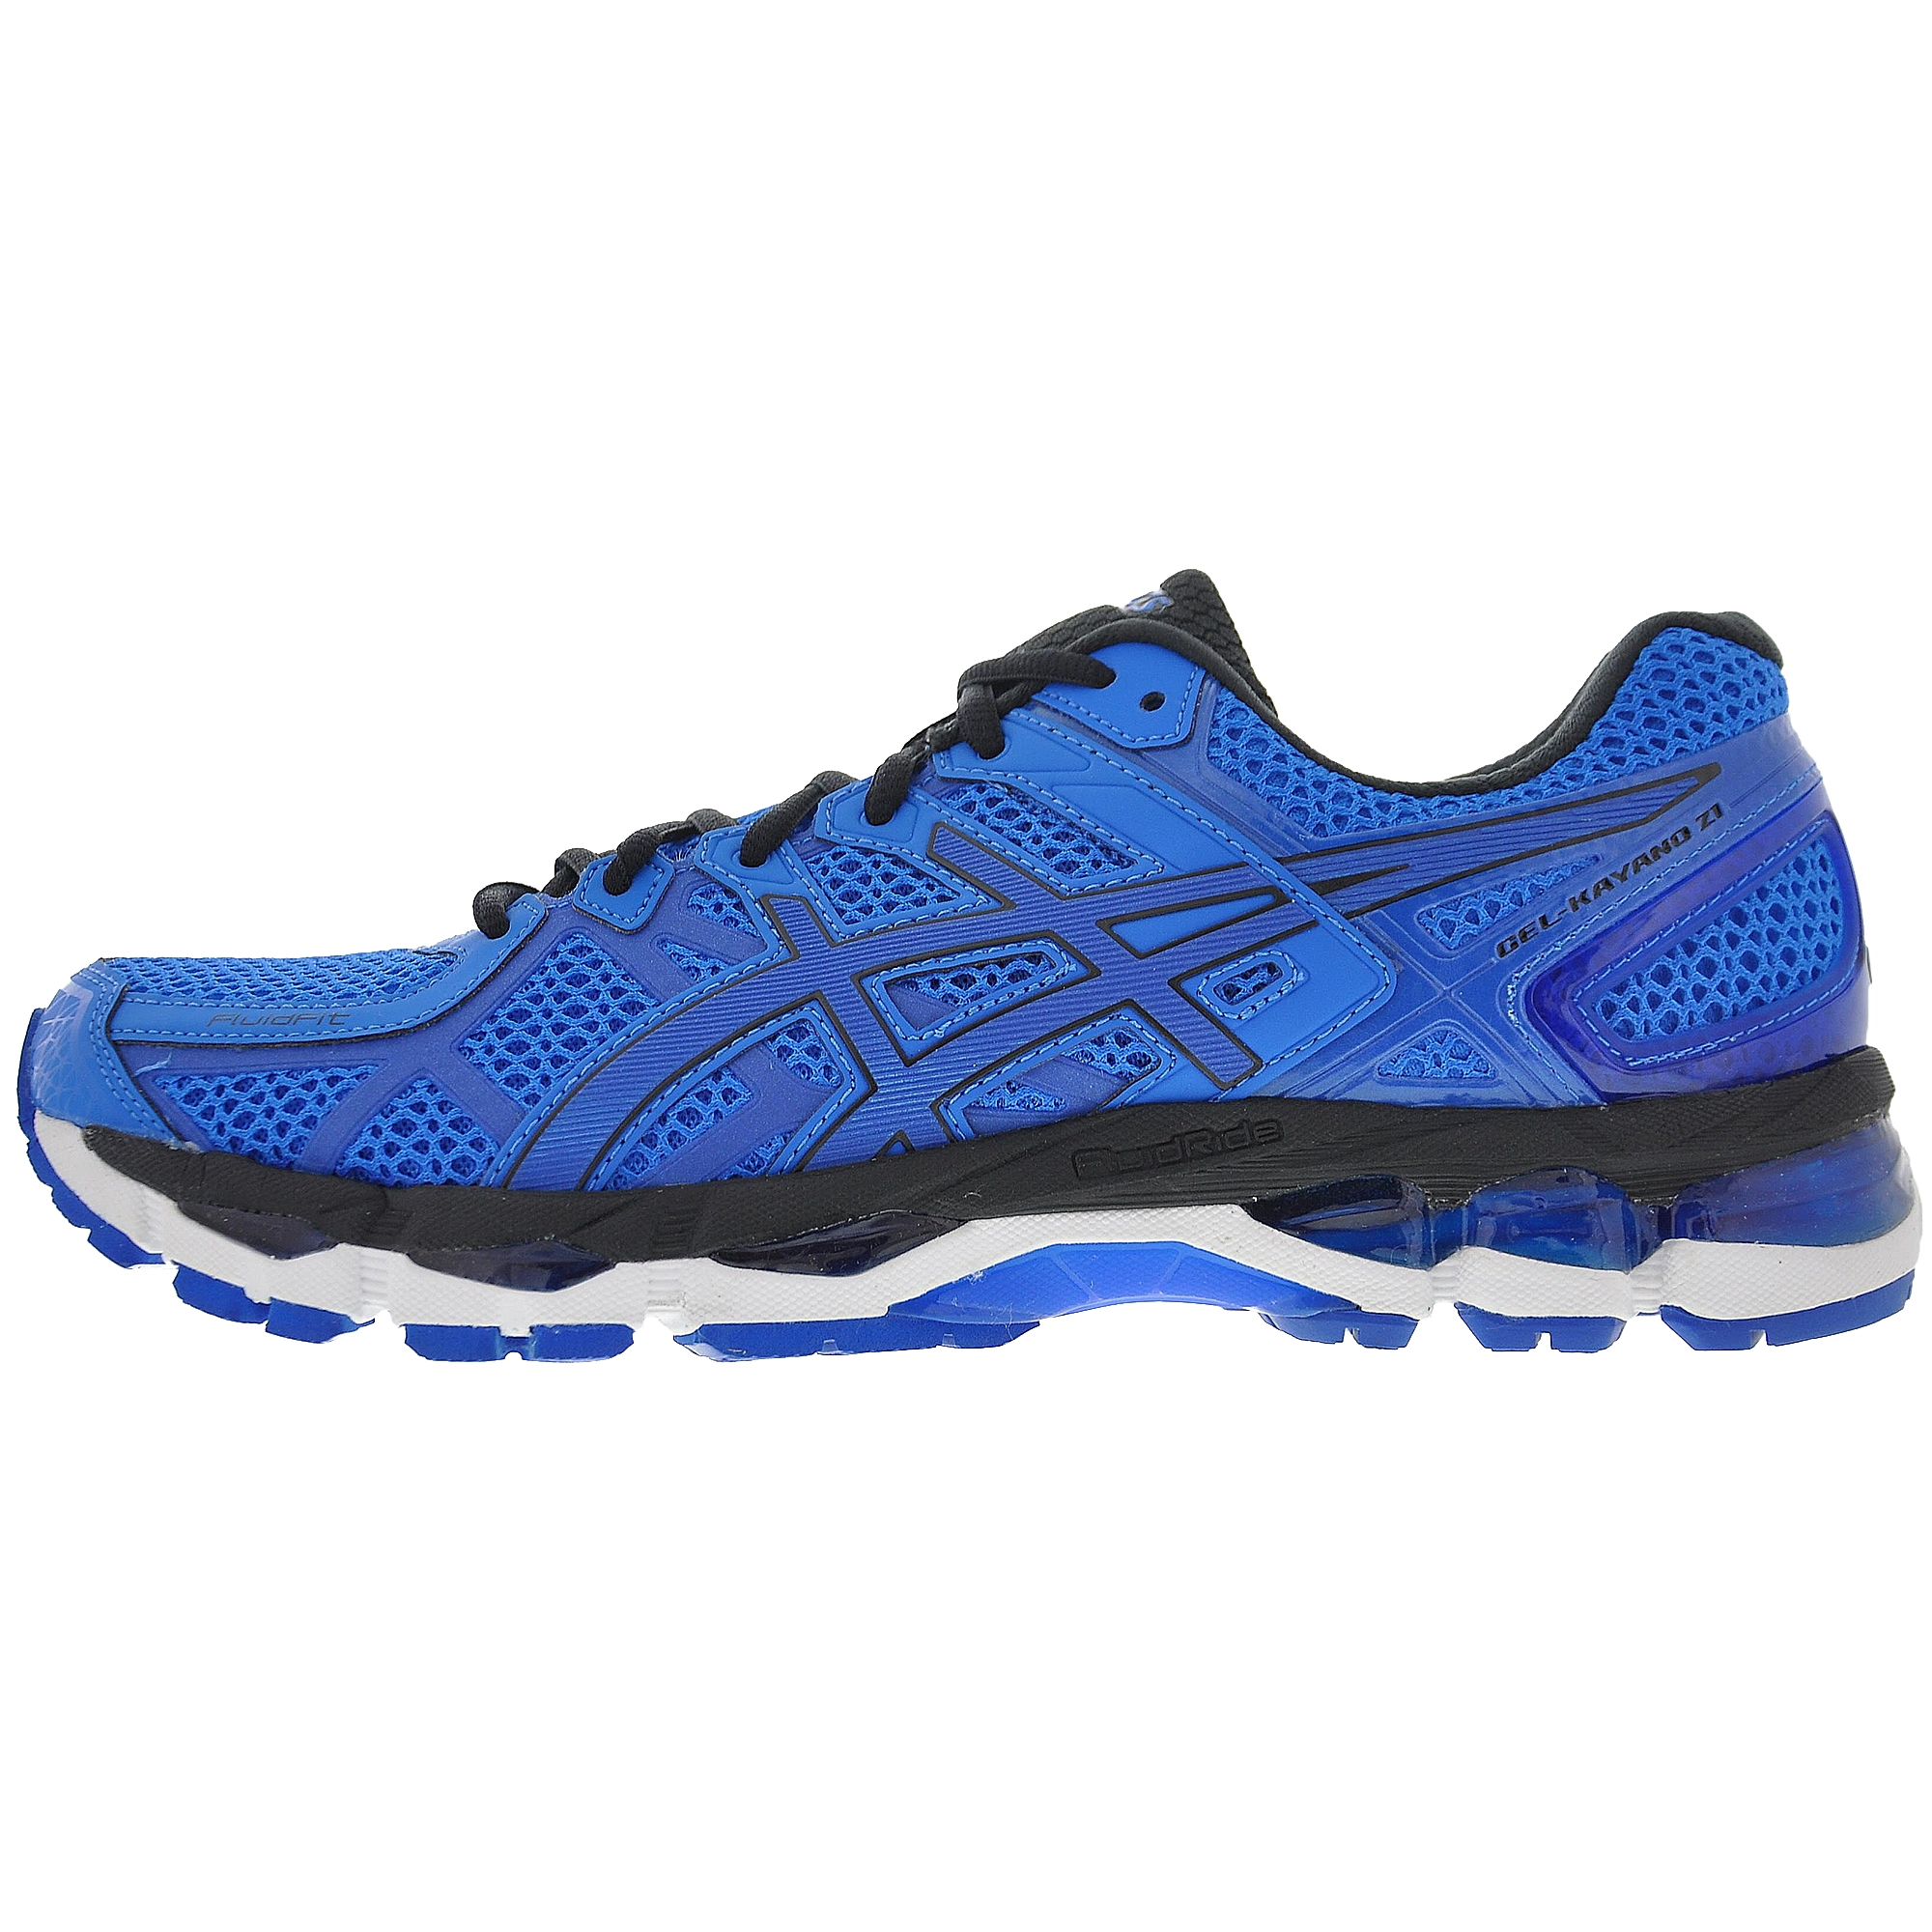 asics gel kayano 21 lite show erkek spor ayakkab t4n0q 4747. Black Bedroom Furniture Sets. Home Design Ideas